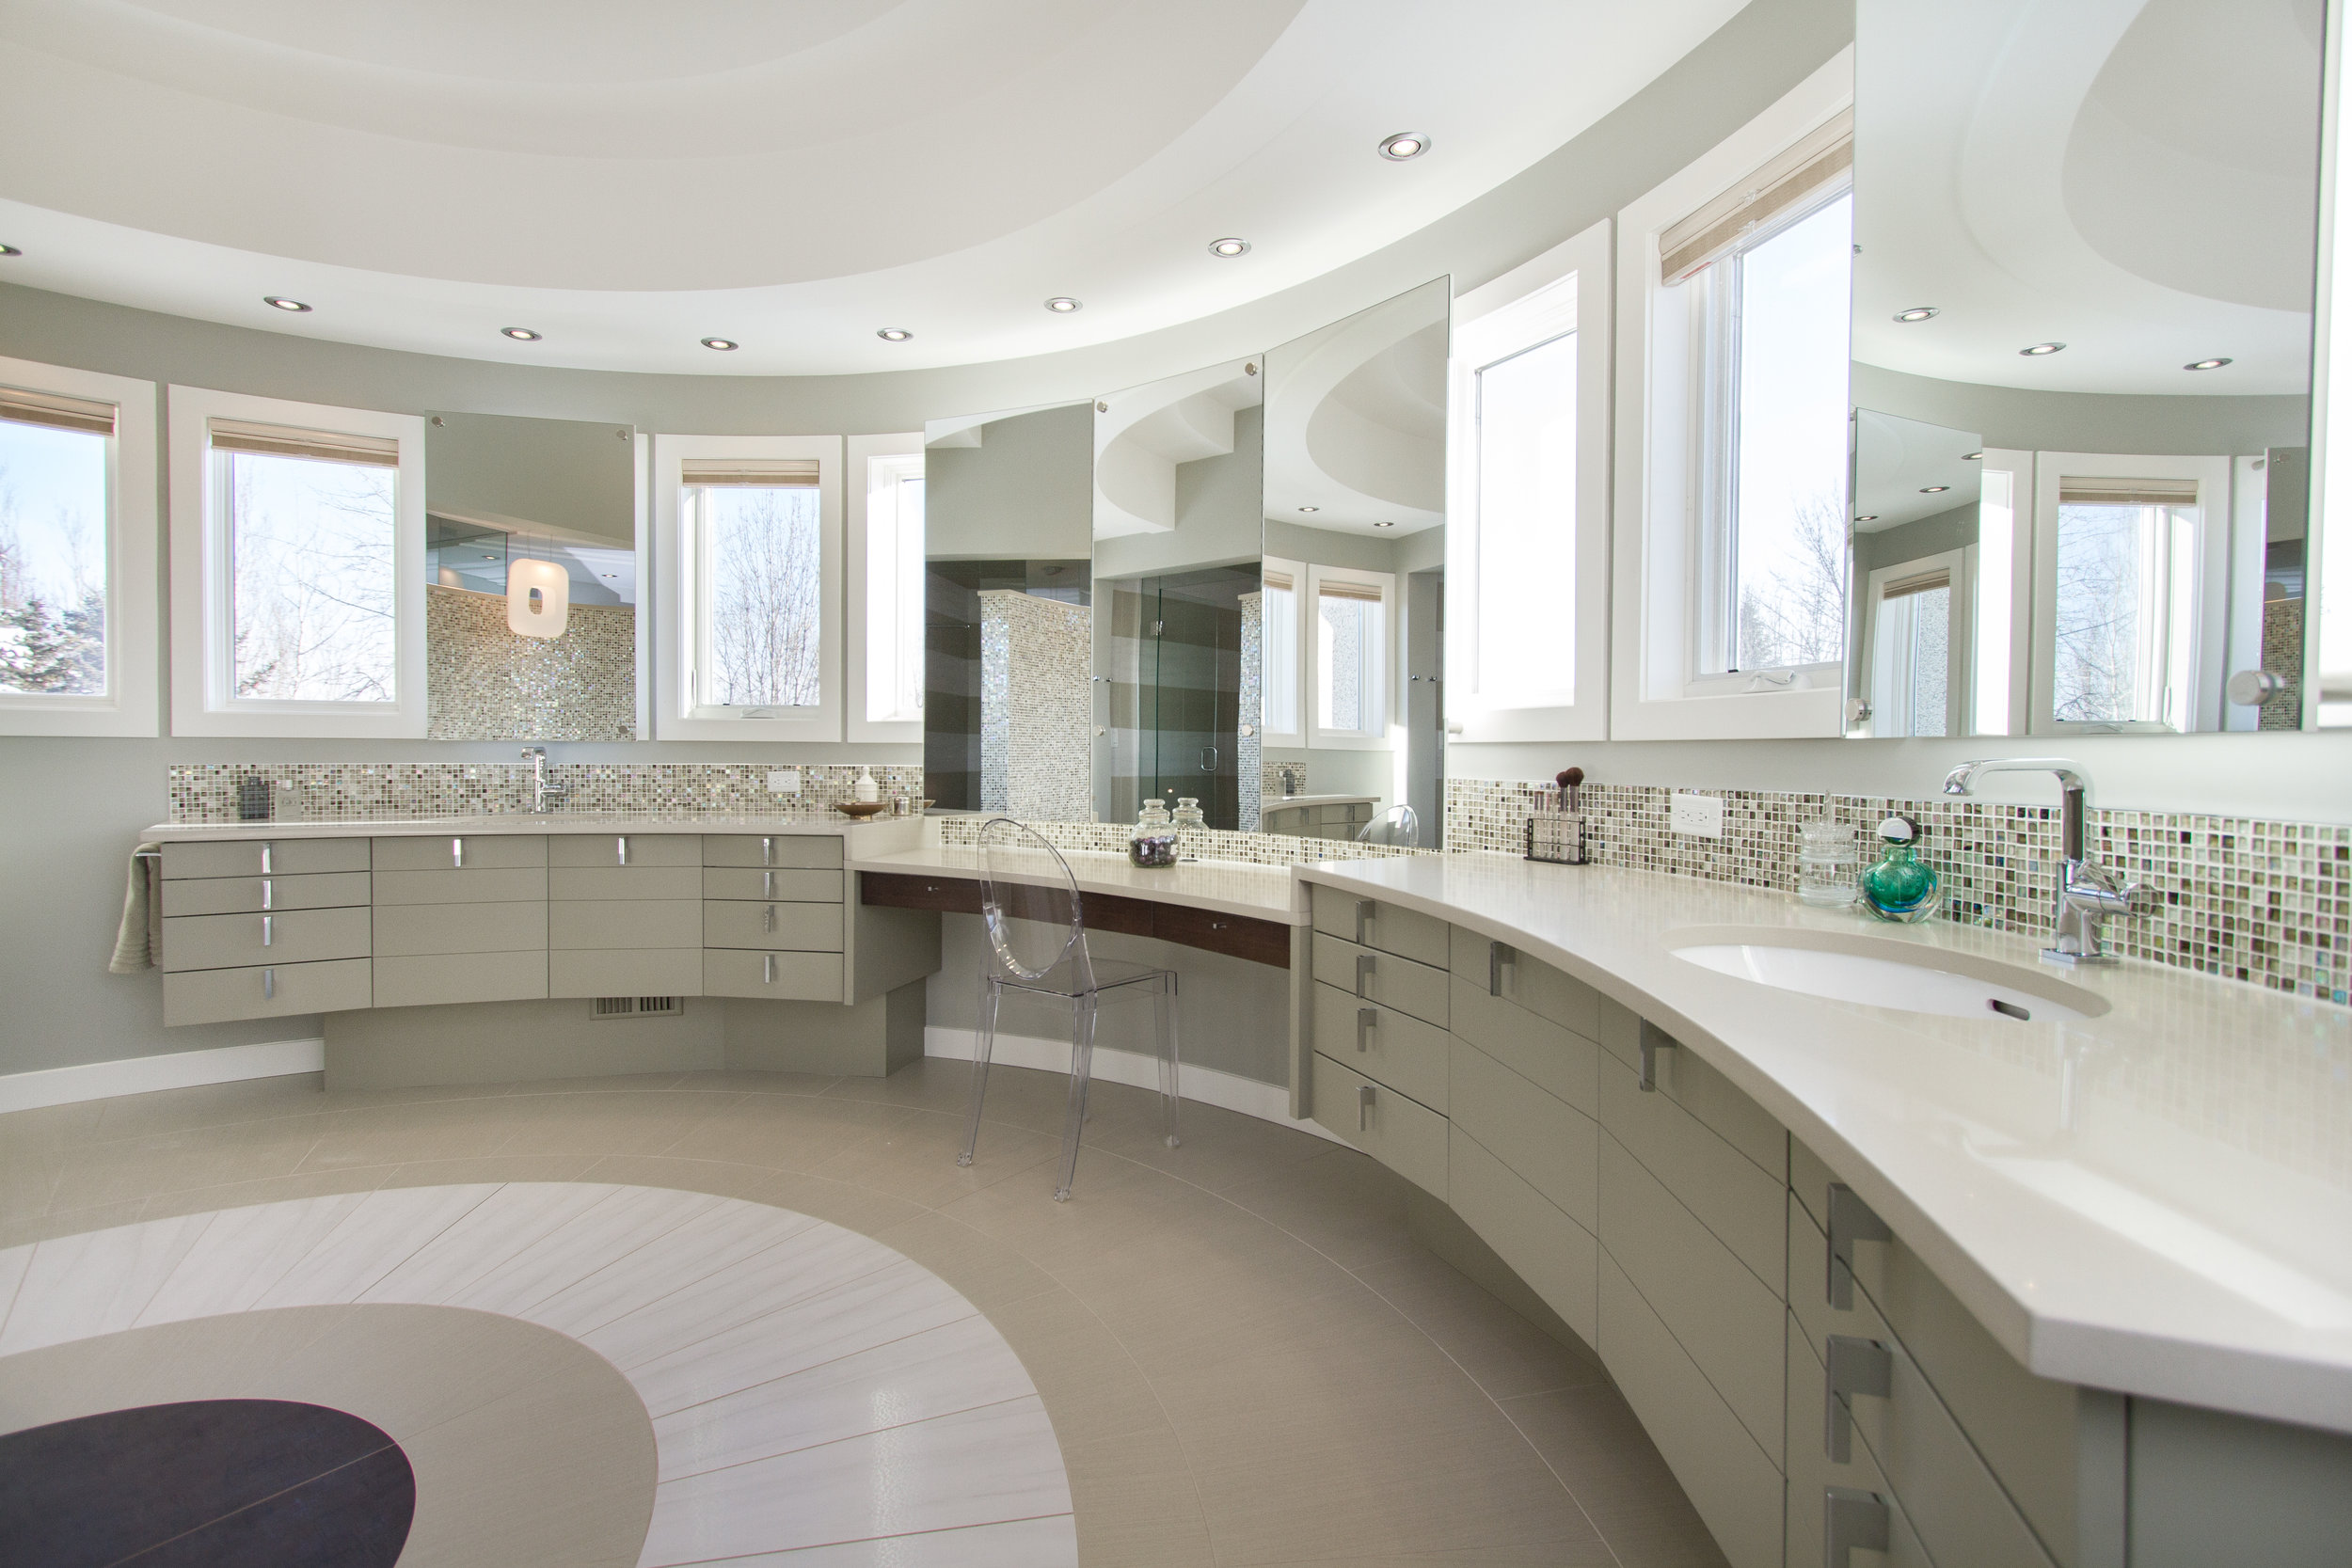 Curved Vanity and Tile instal